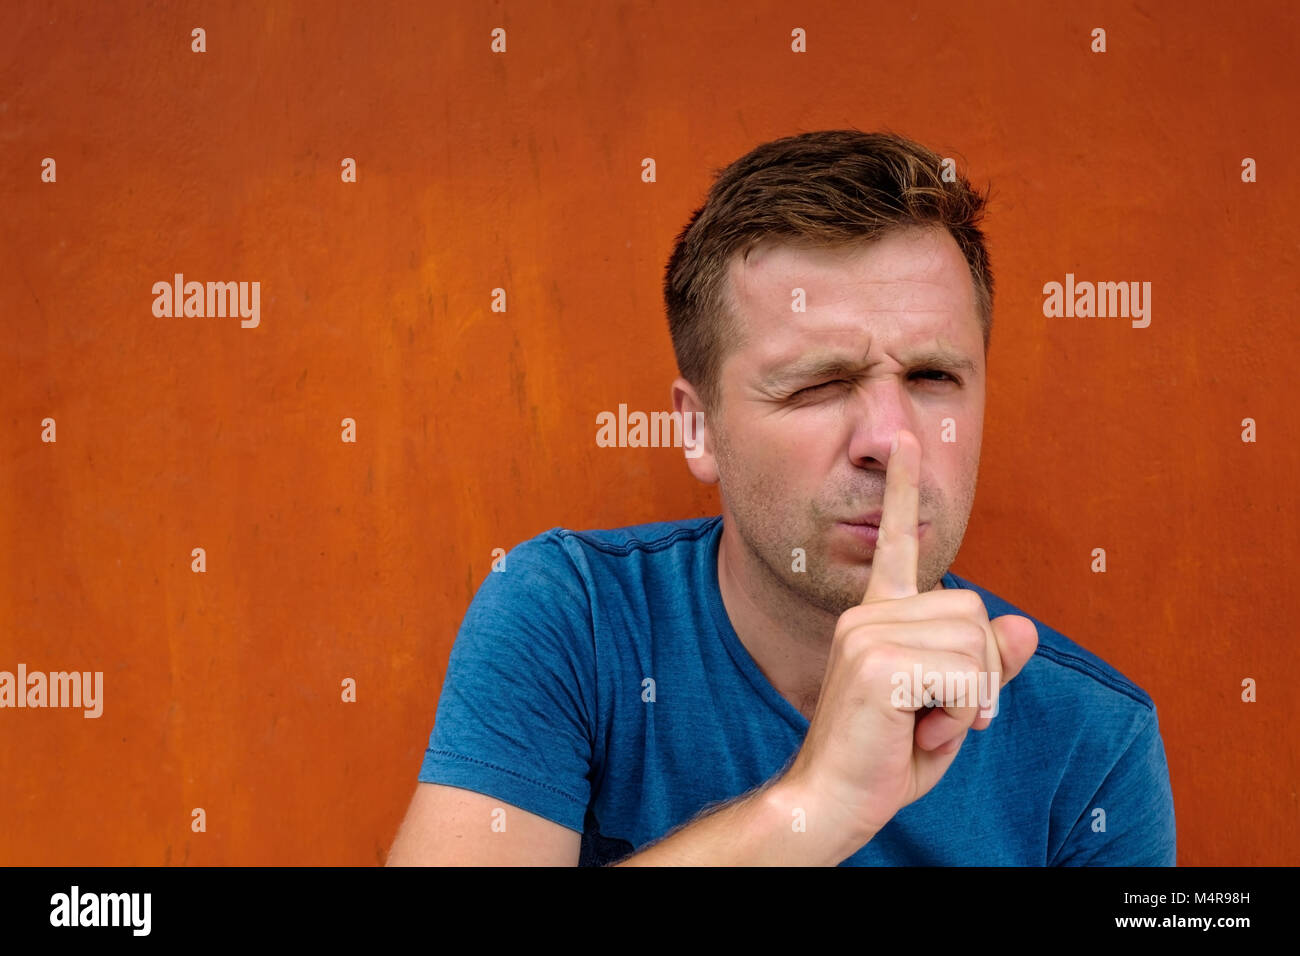 Closeup portrait of young caucasian man placing finger on lips as if to say, shh, be quiet - Stock Image